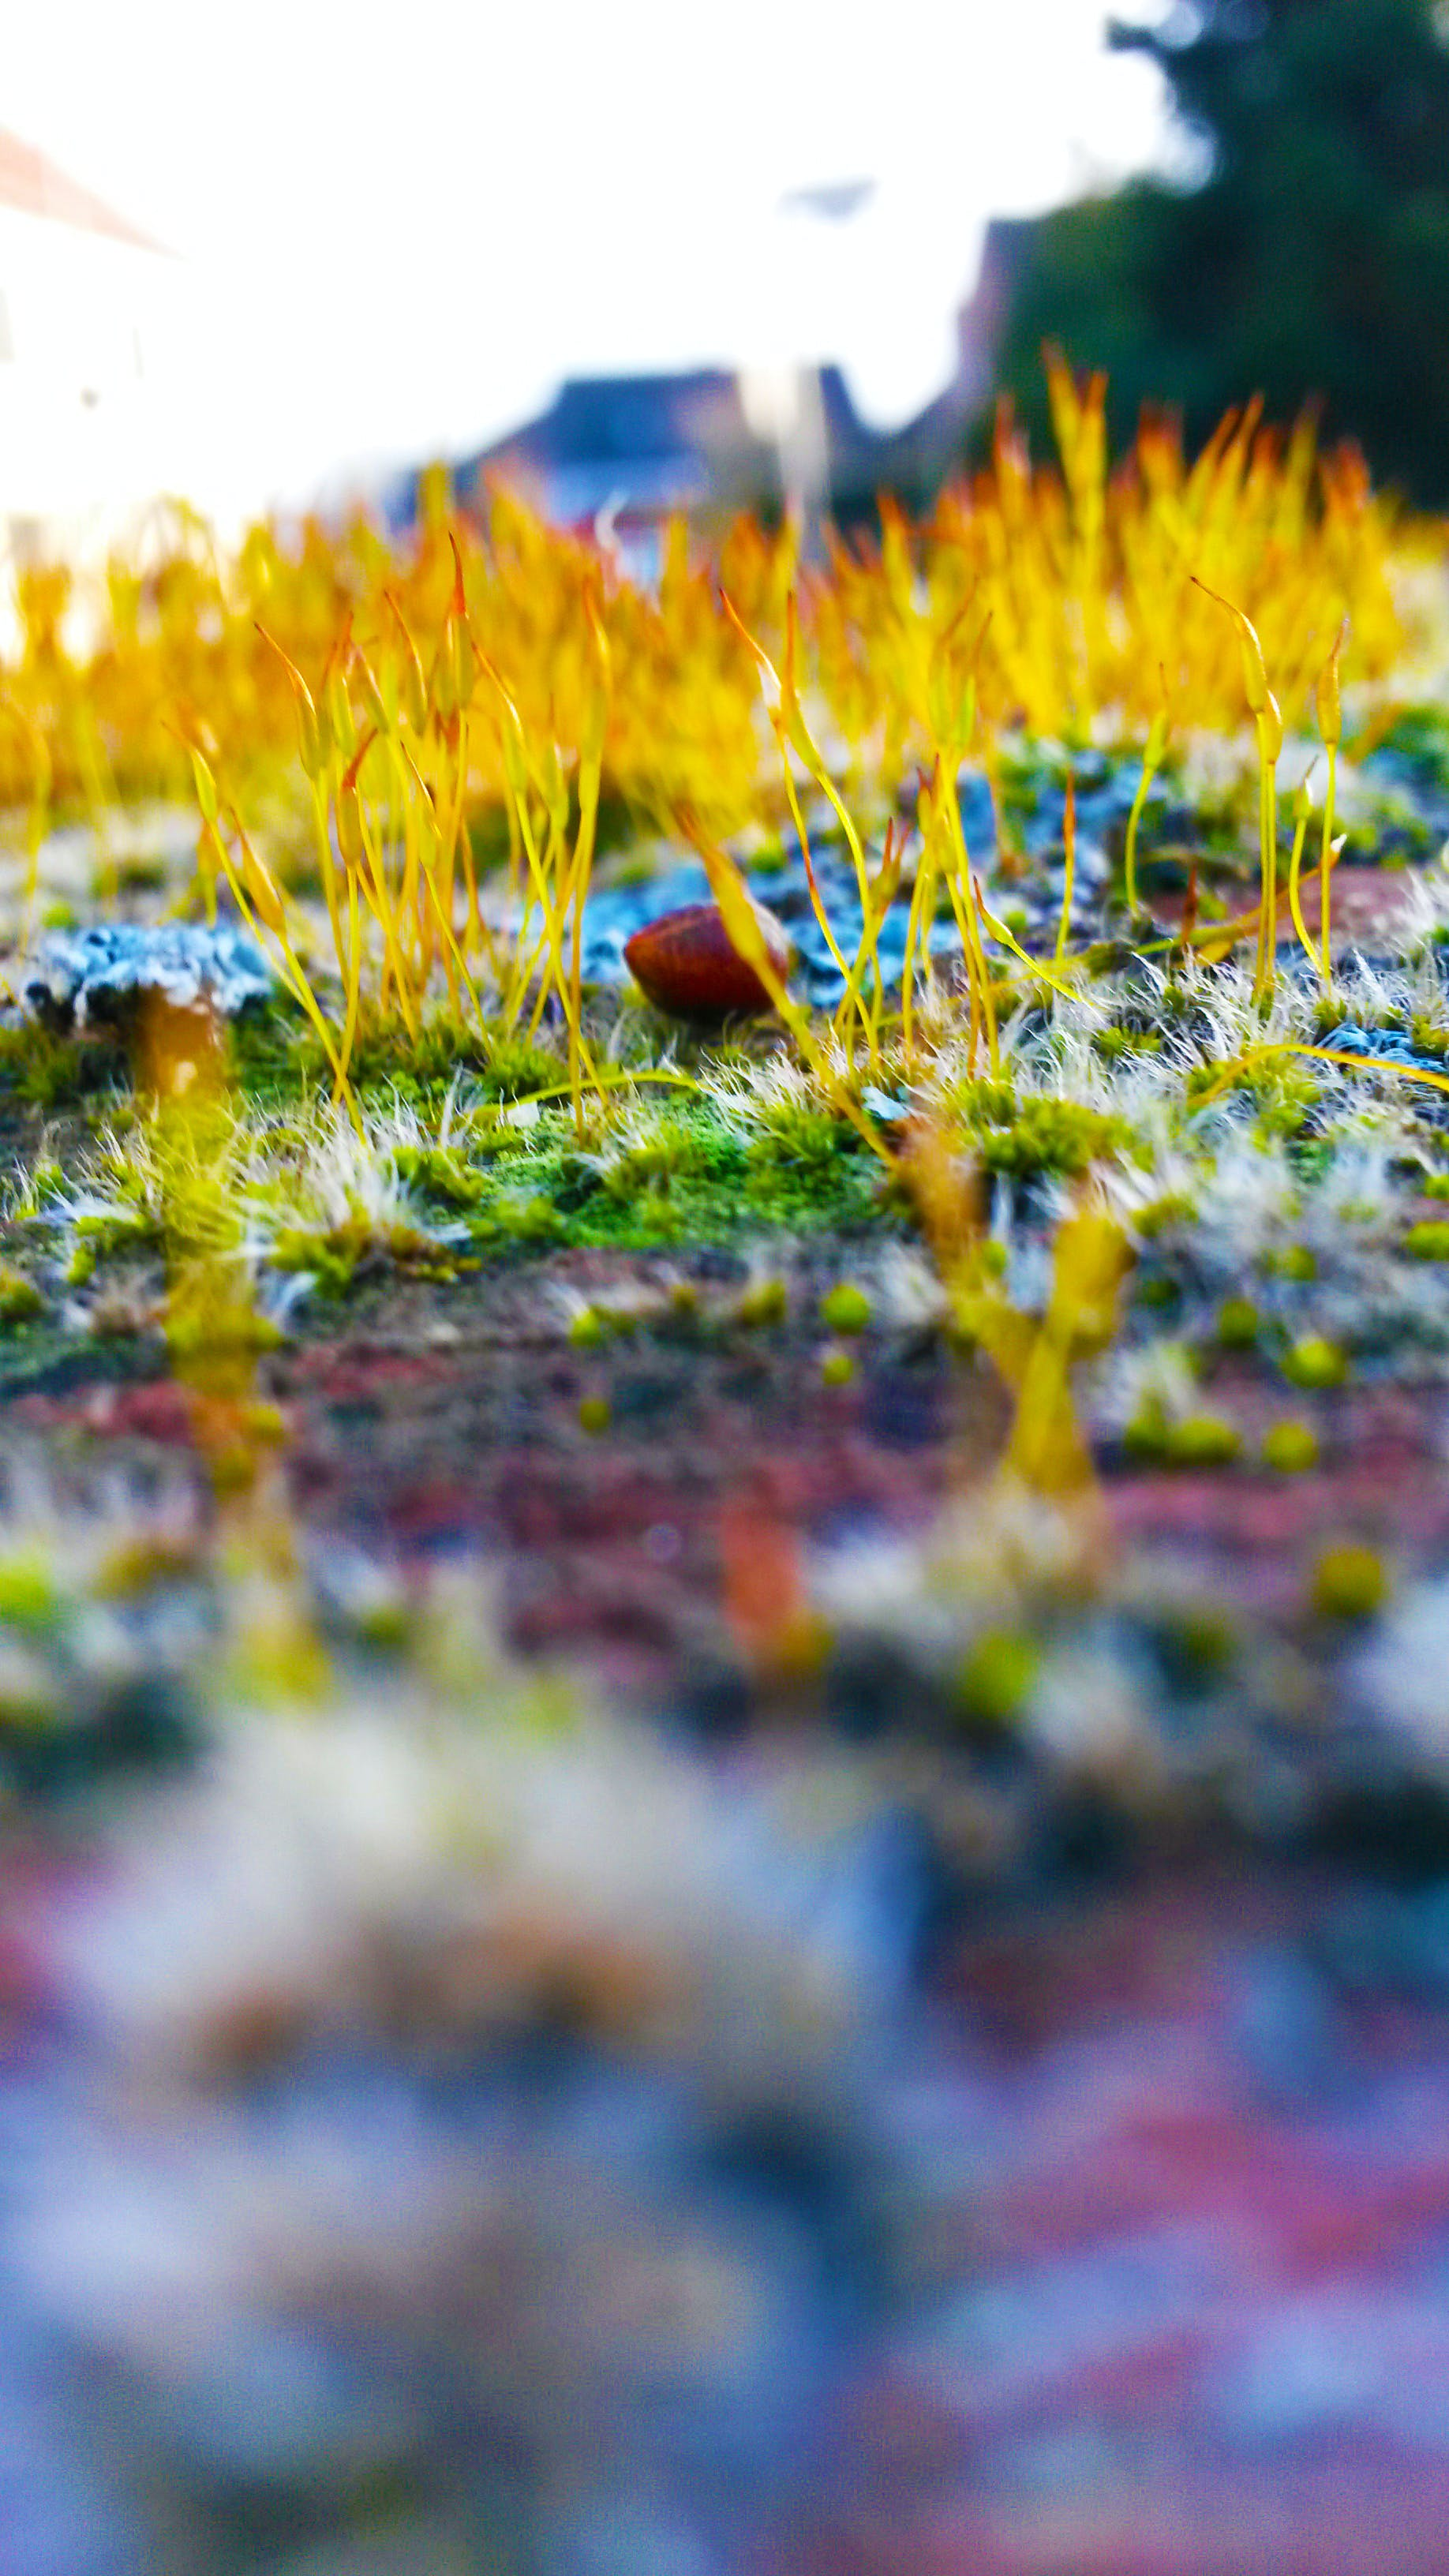 Free stock photo of nature, grass, blur, ground